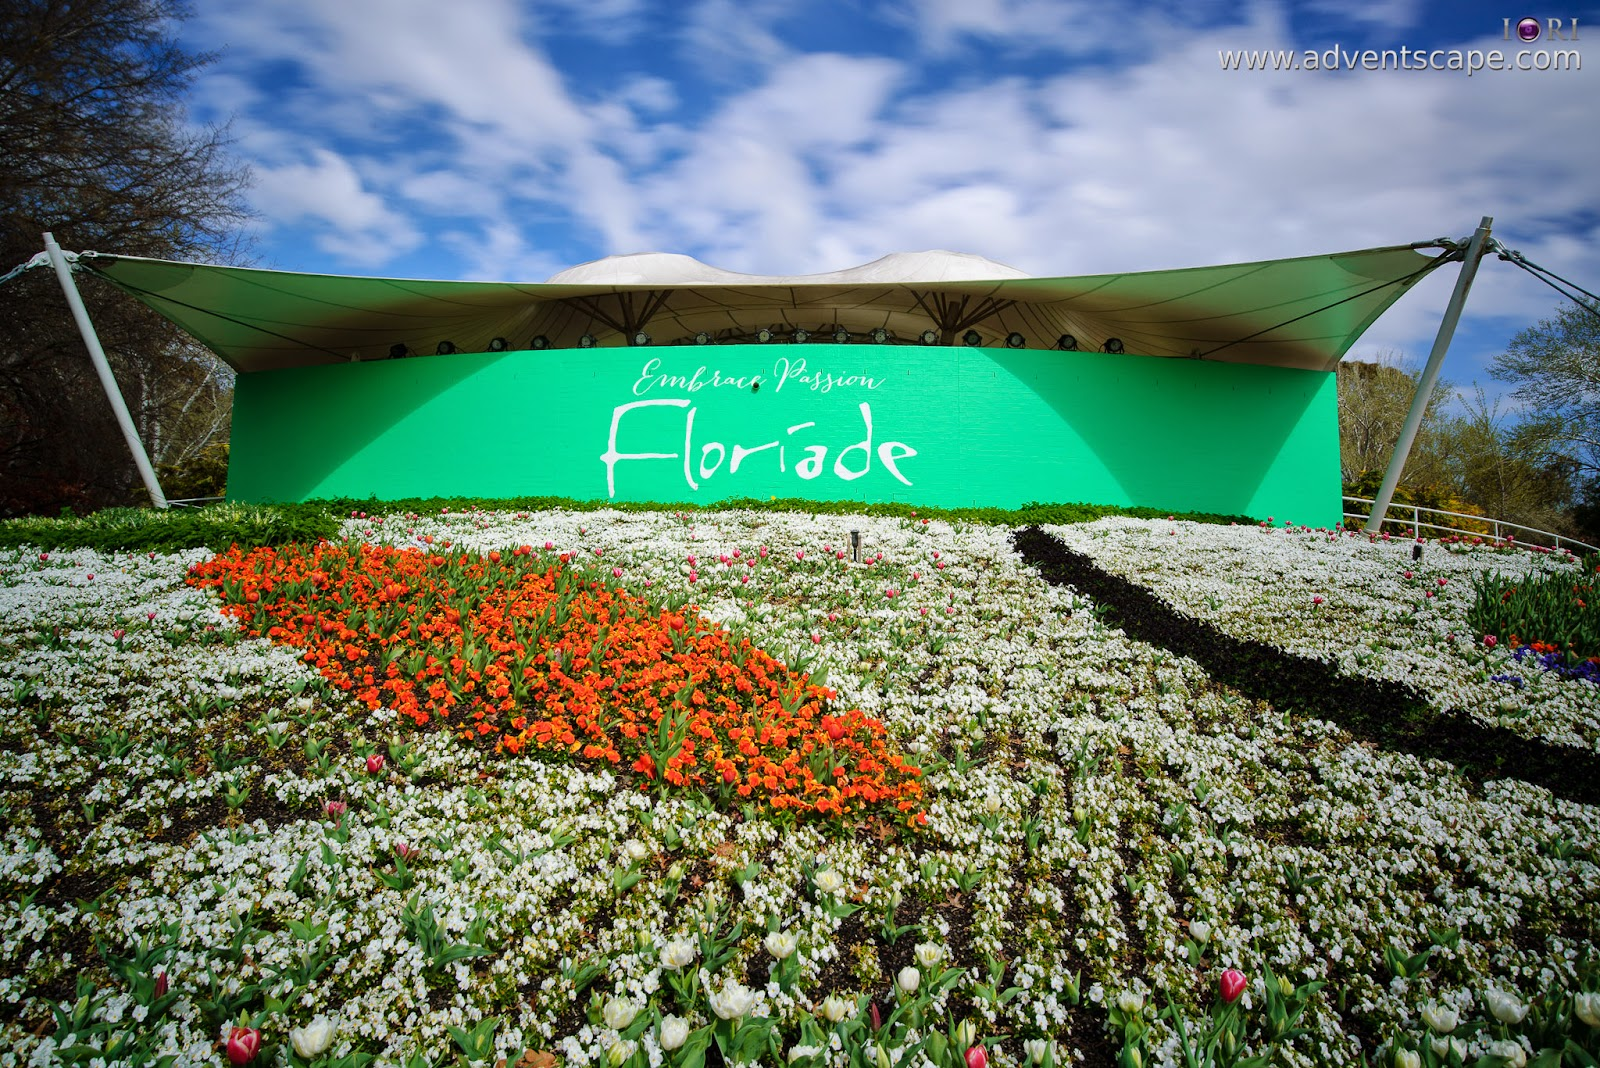 Philip Avellana, iori, advenscape, Floriade, 2014, spring festival, Canberra, ACT, Australian Capital Territory, park, flowers, blossom, Stage 88 Lawns